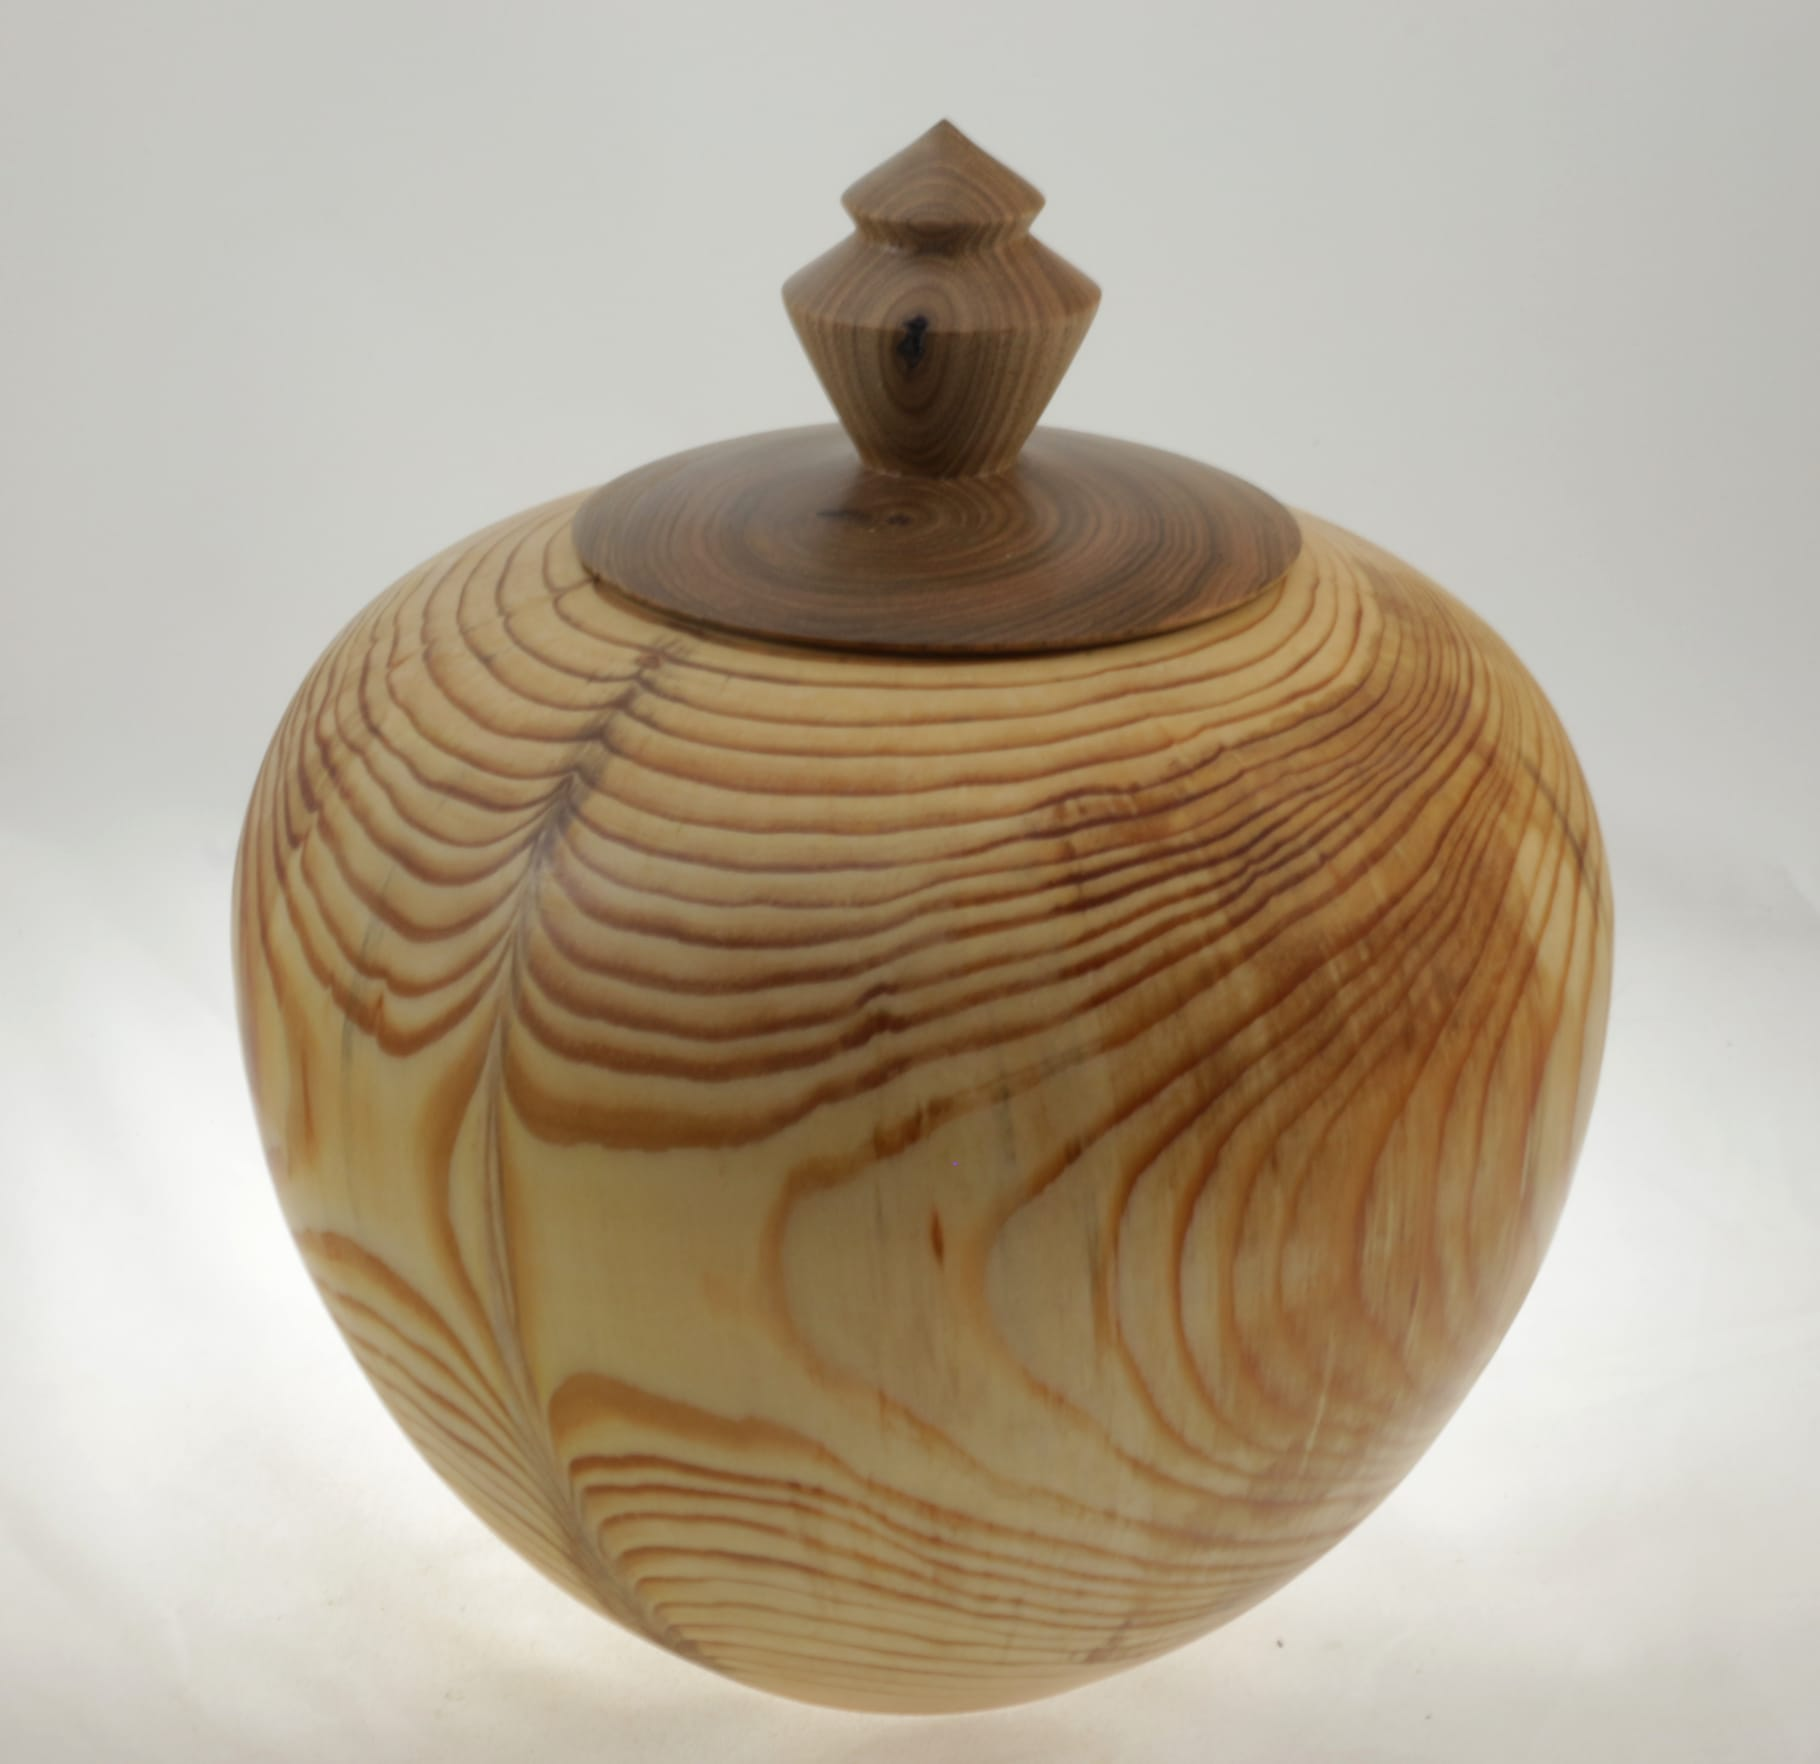 Wood cremation urn - #106a-pine 9 x 7.25in.